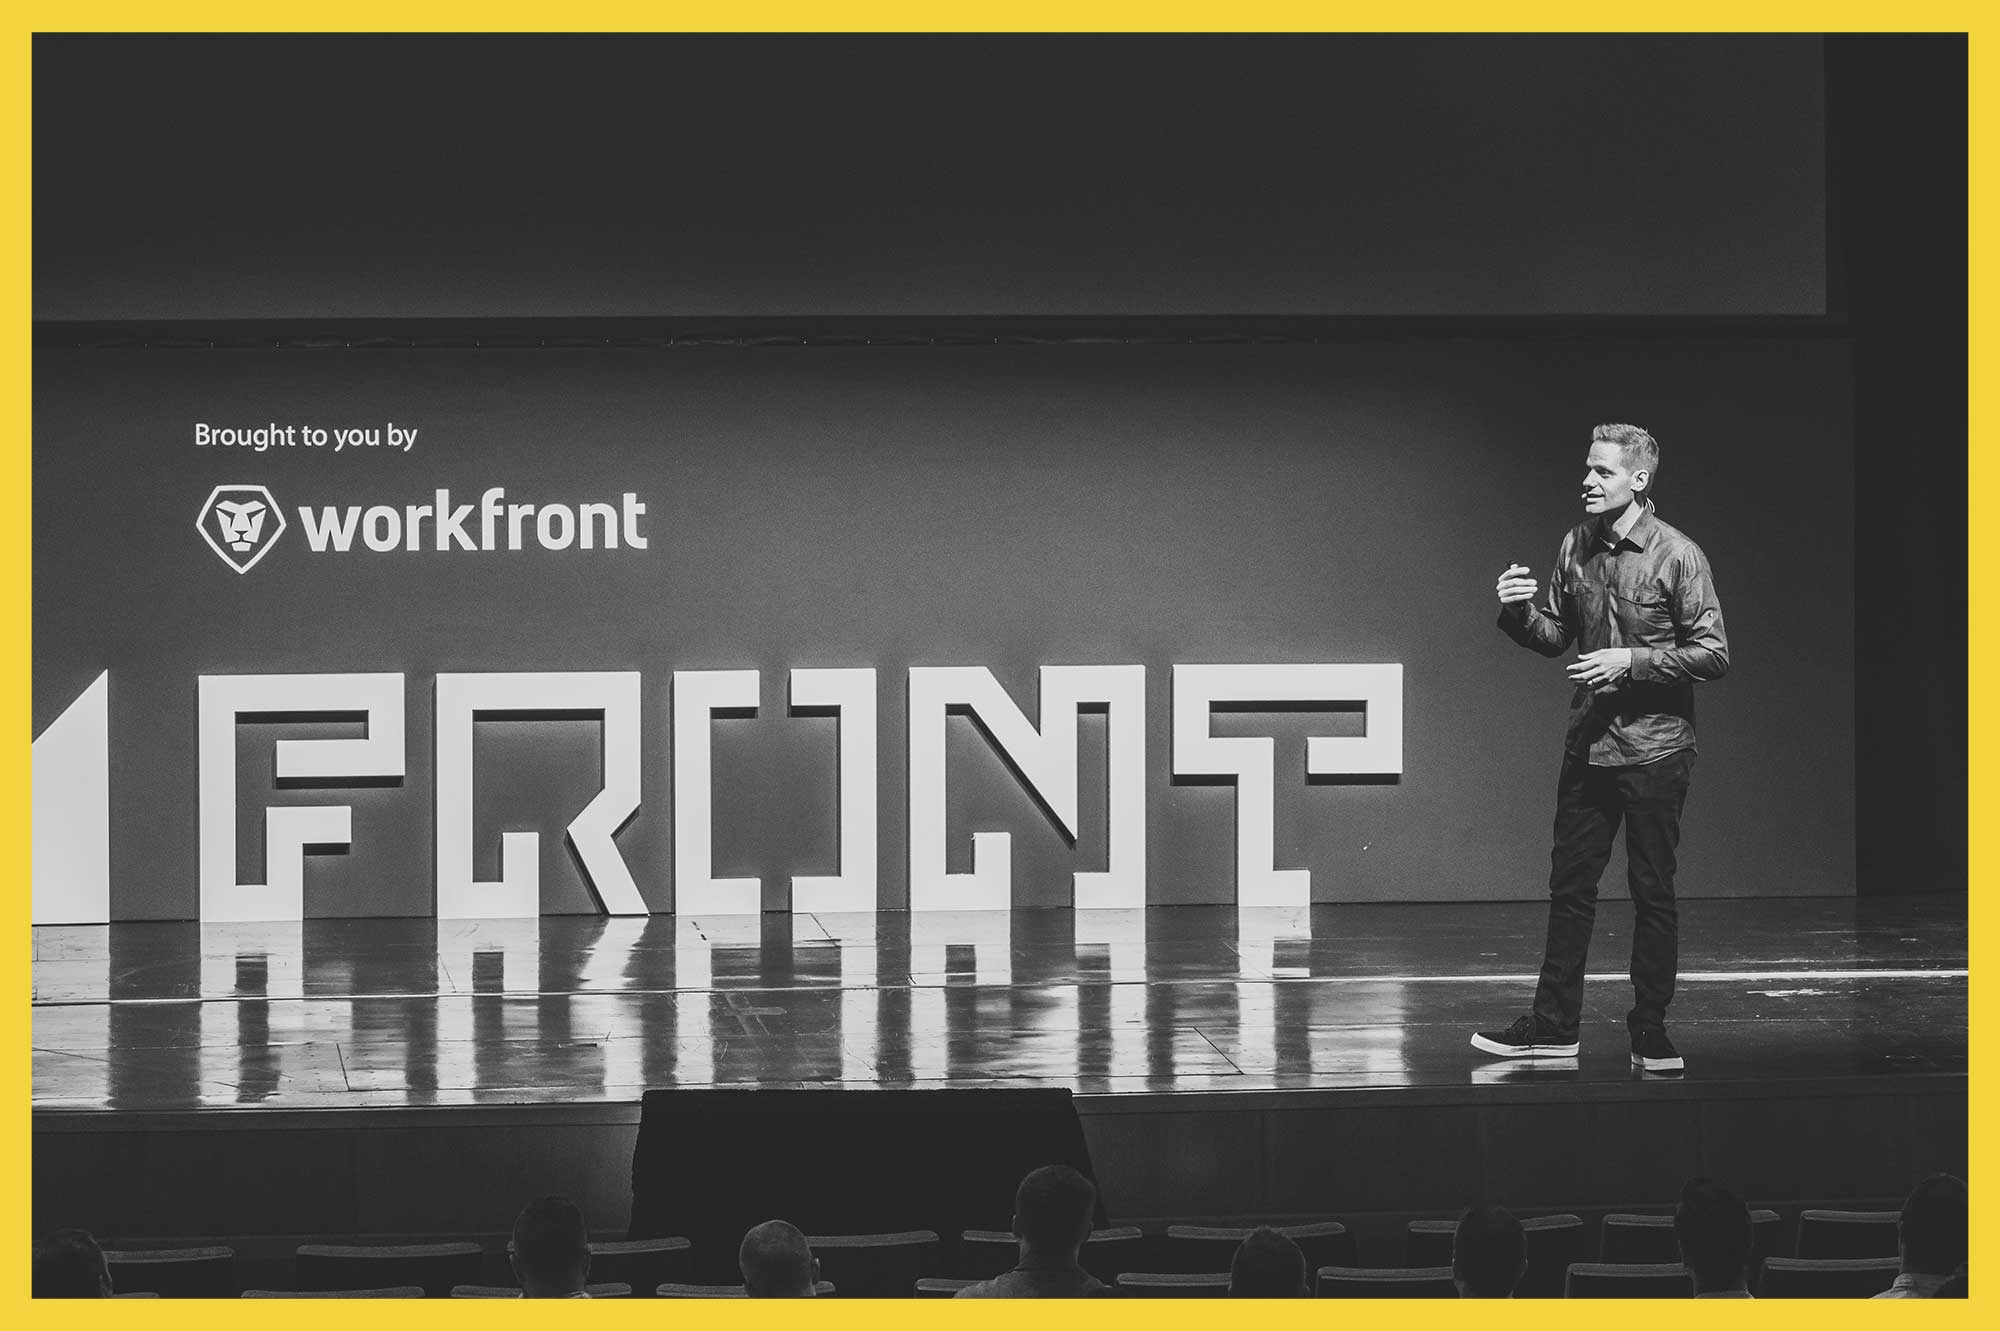 Cameron Moll speaking at Front 2016 in Salt Lake City